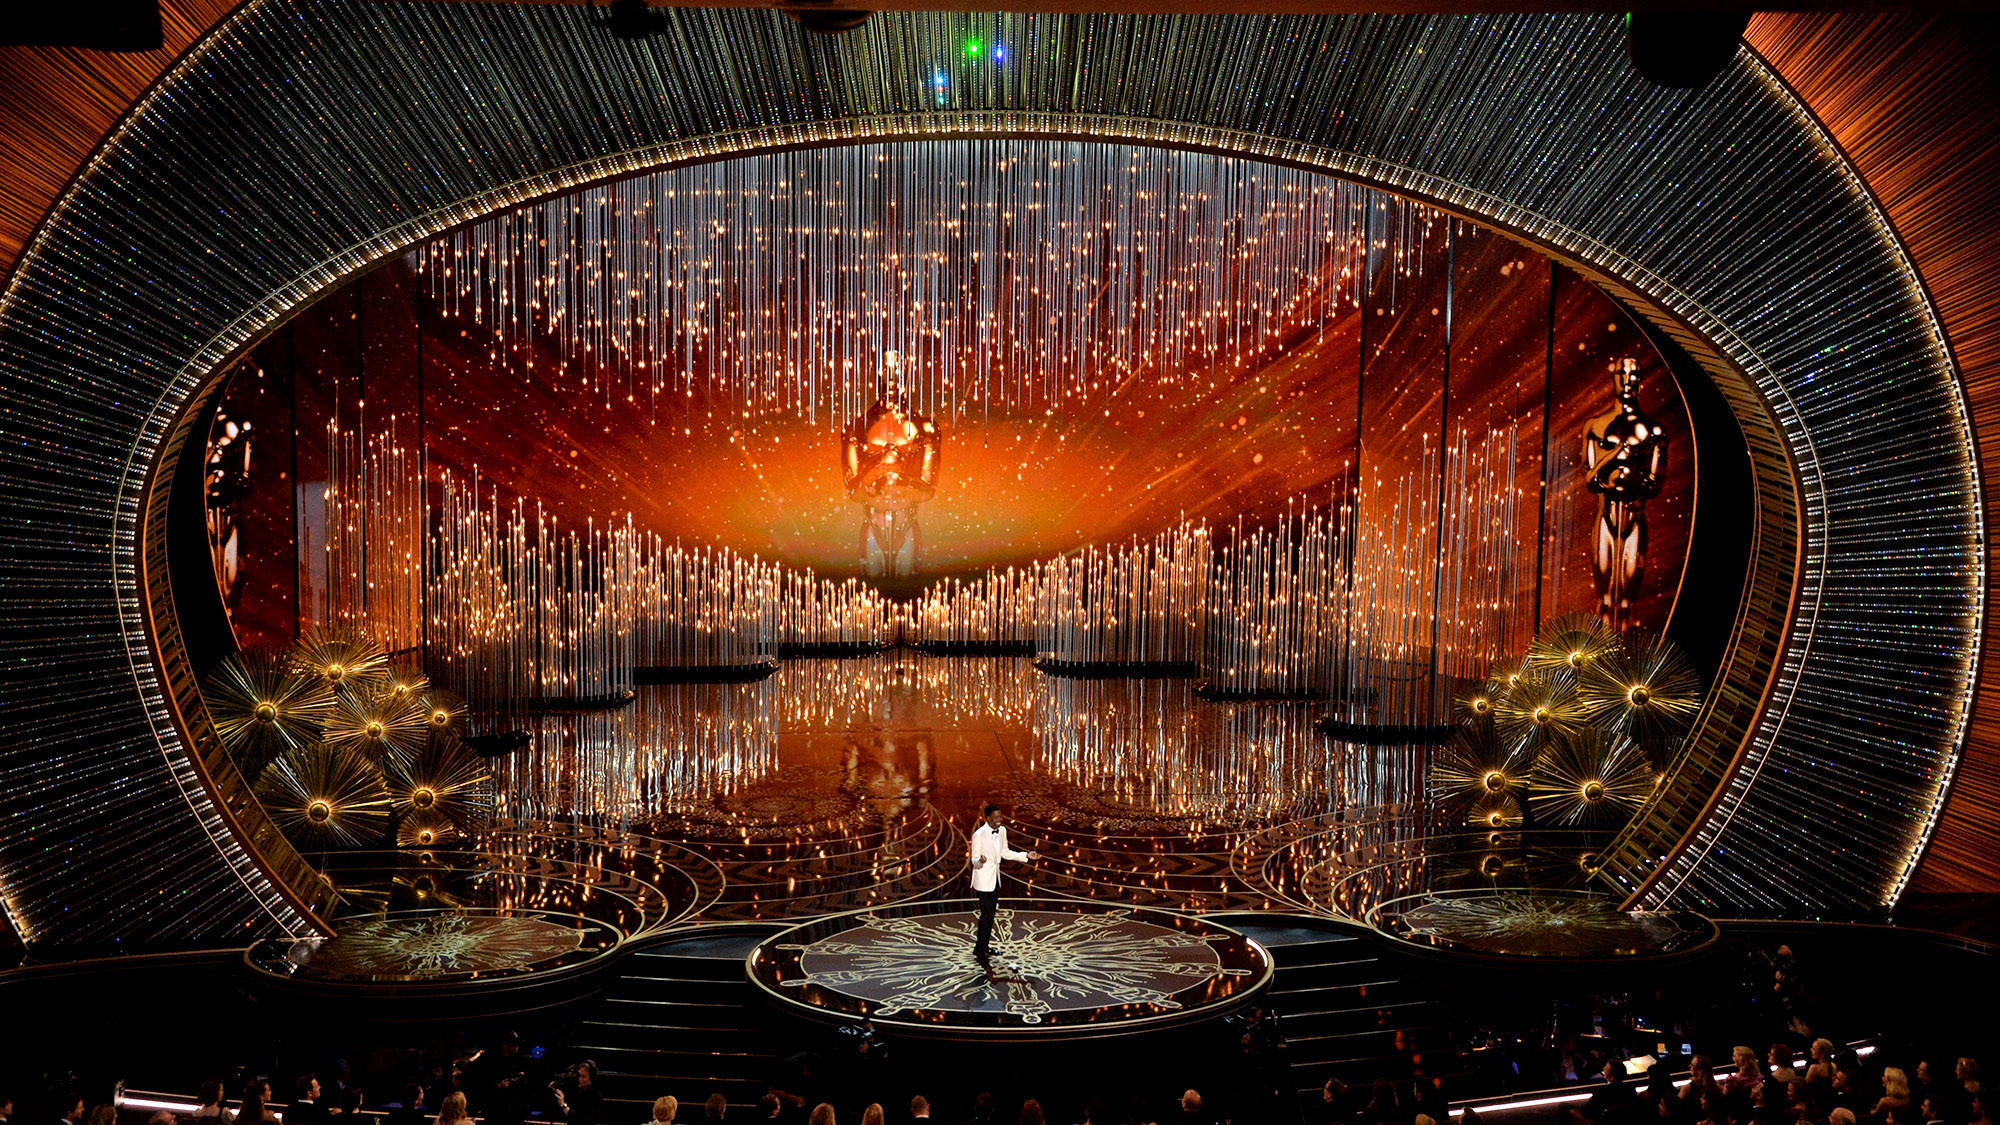 Oscars 2016 Live Coverage Of The 88th Academy Awards